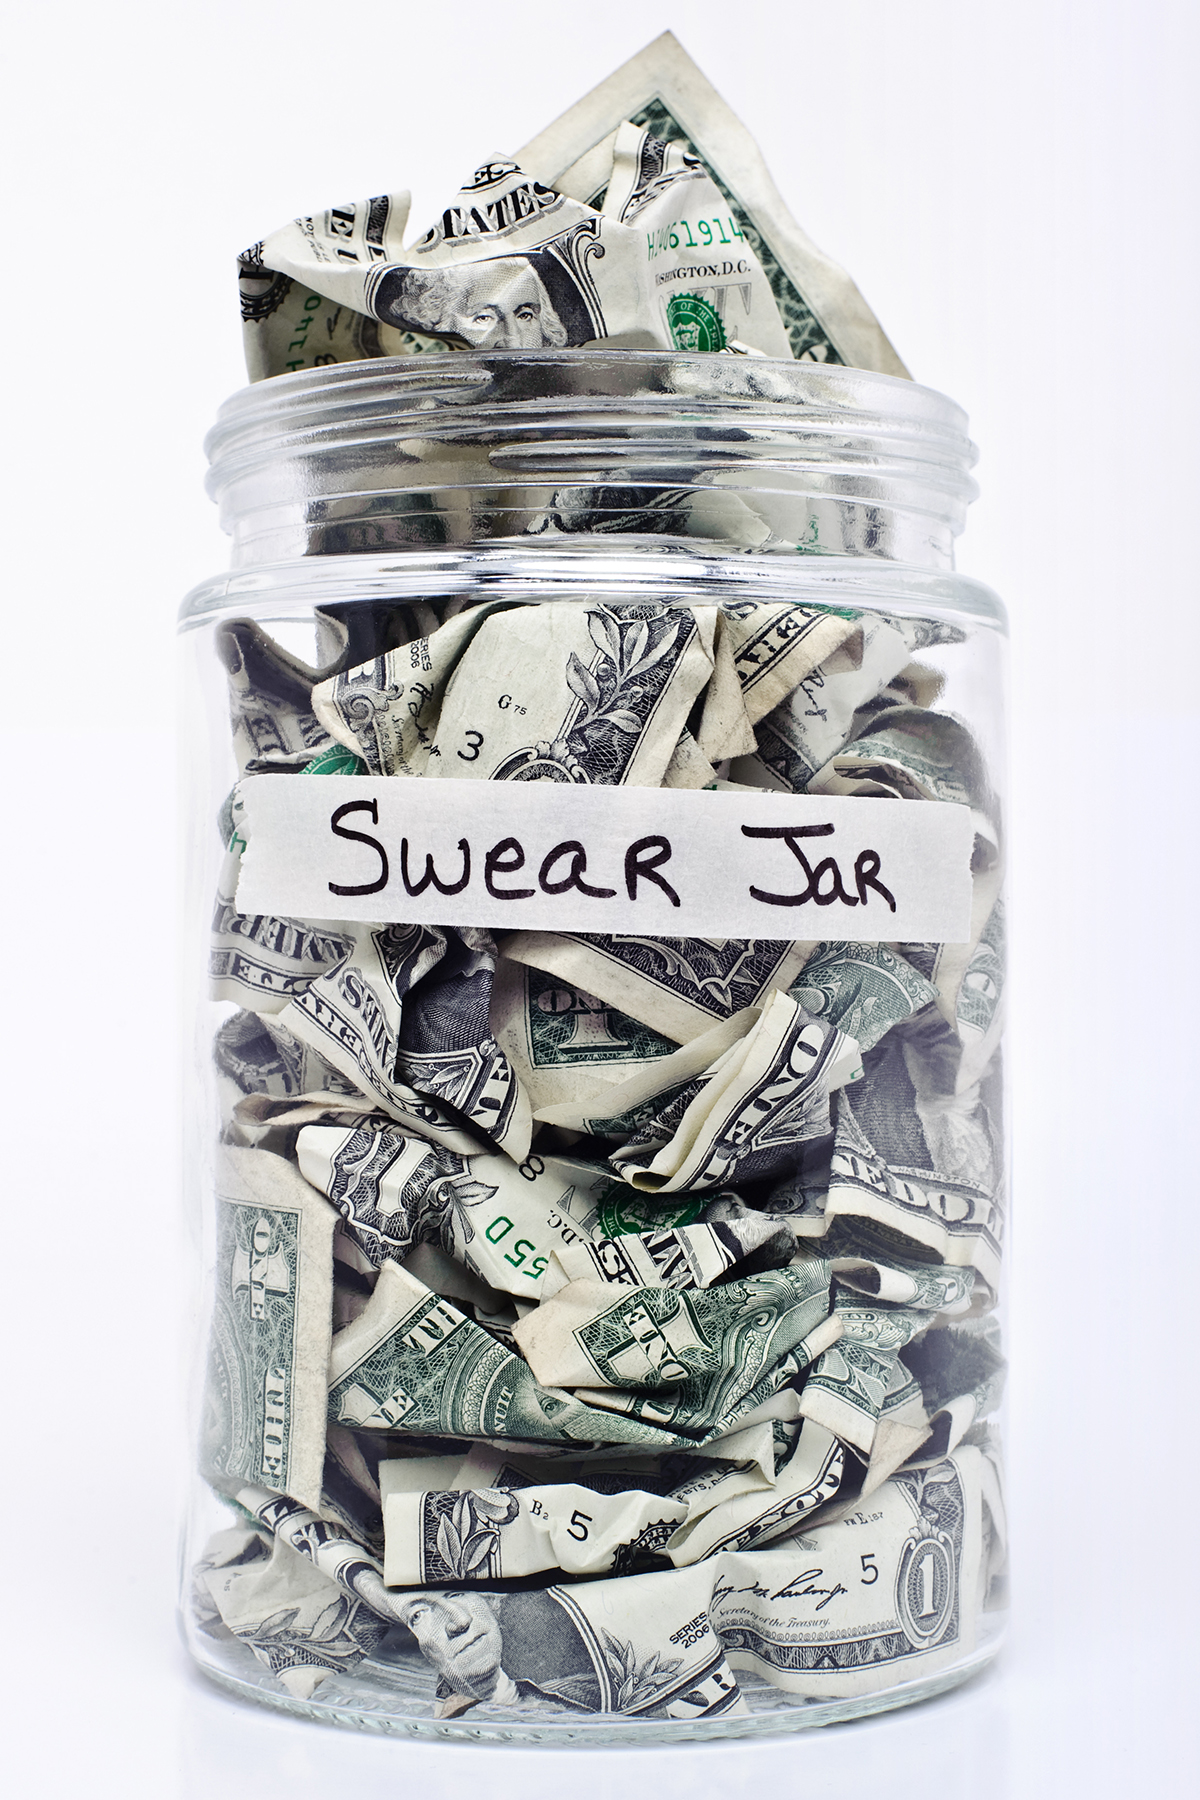 Swear jar with coins